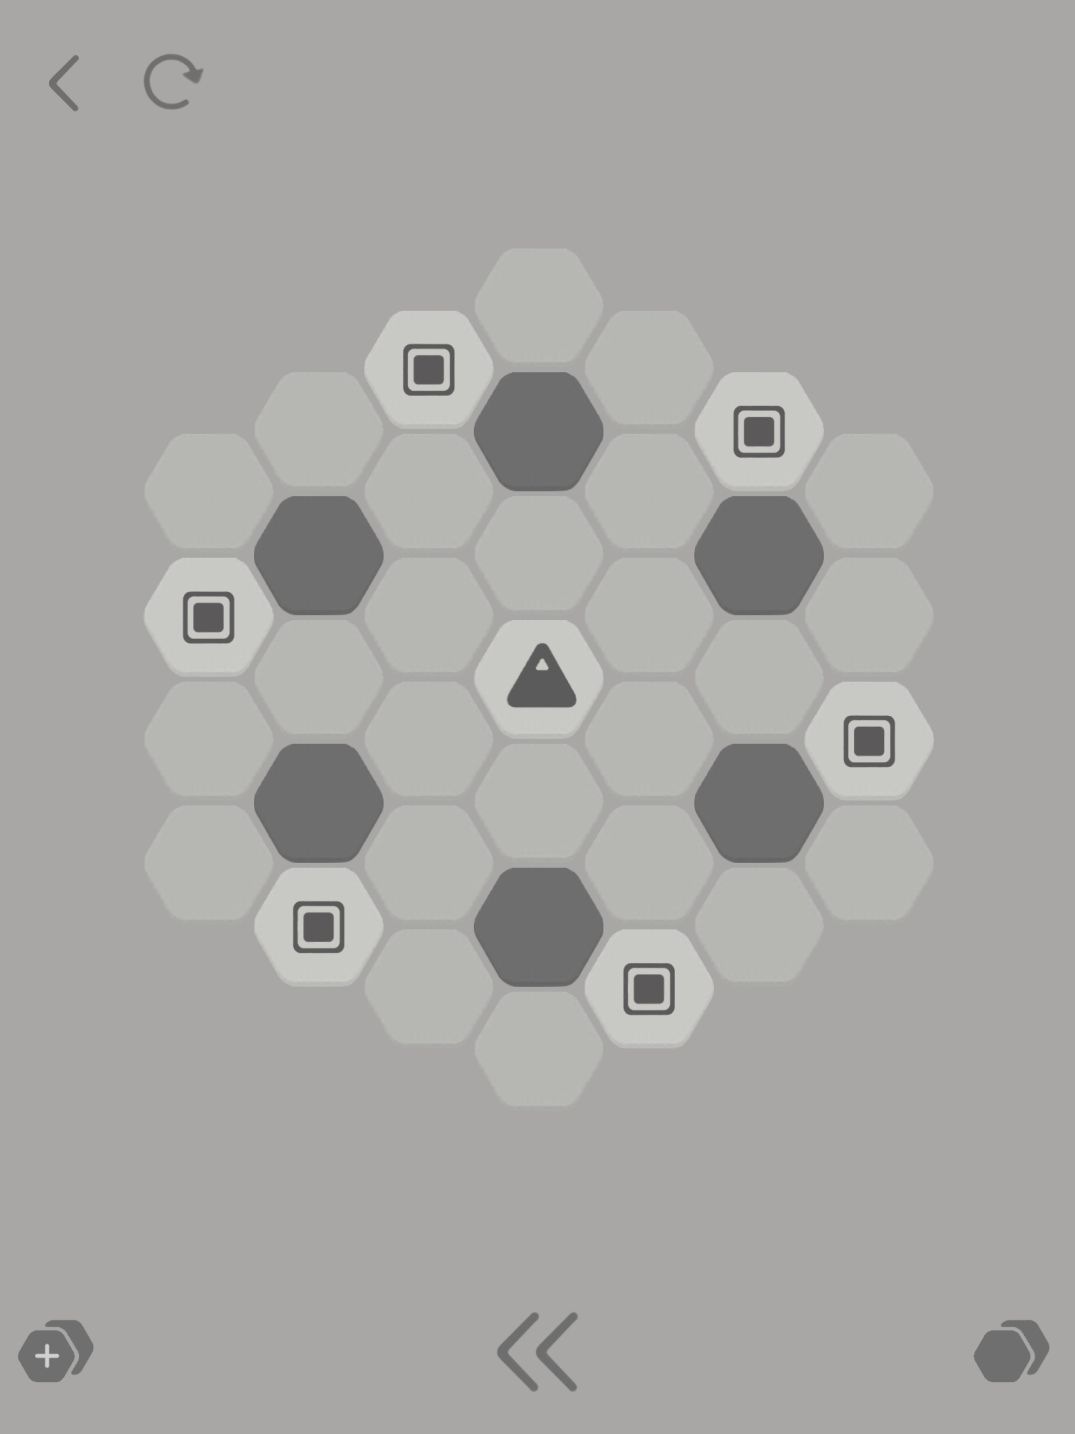 Hexa Turn (copie d'écran 2 sur iPhone / iPad)